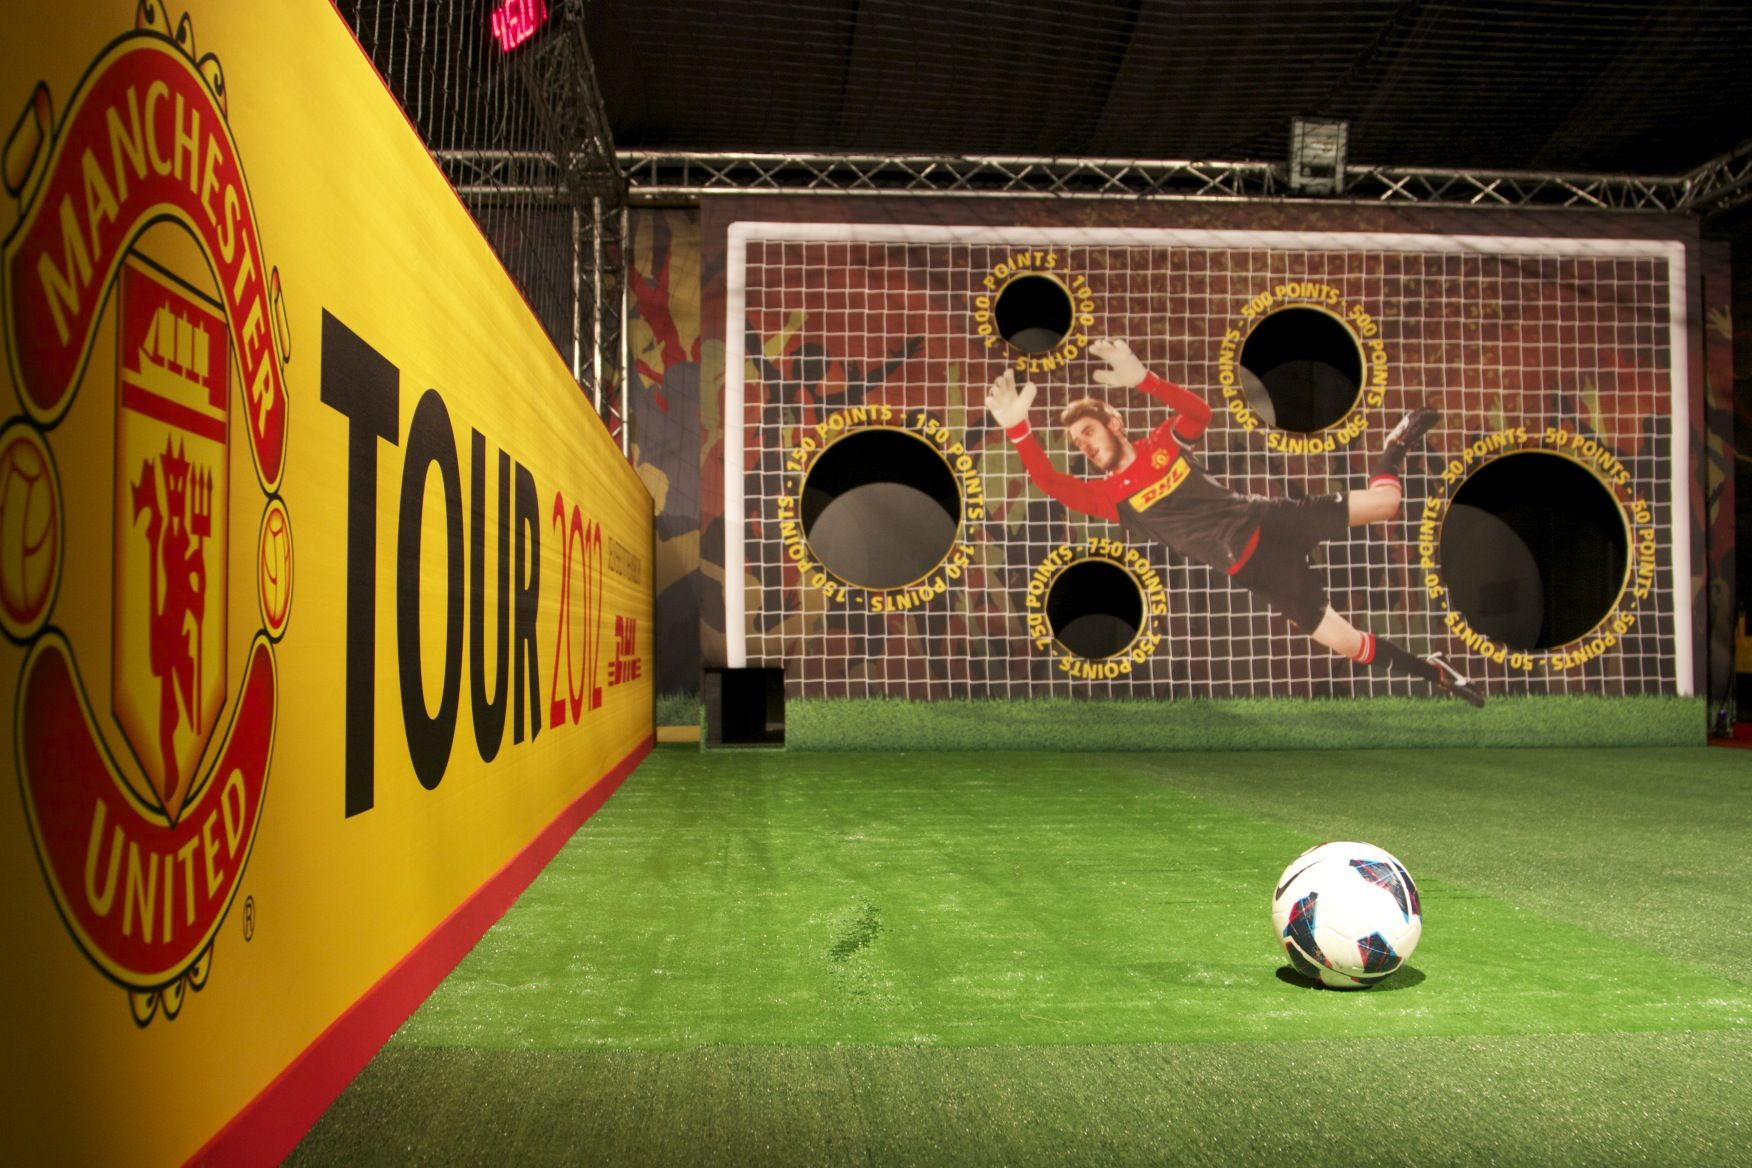 Cool activation by Manchester United on the 2013 world